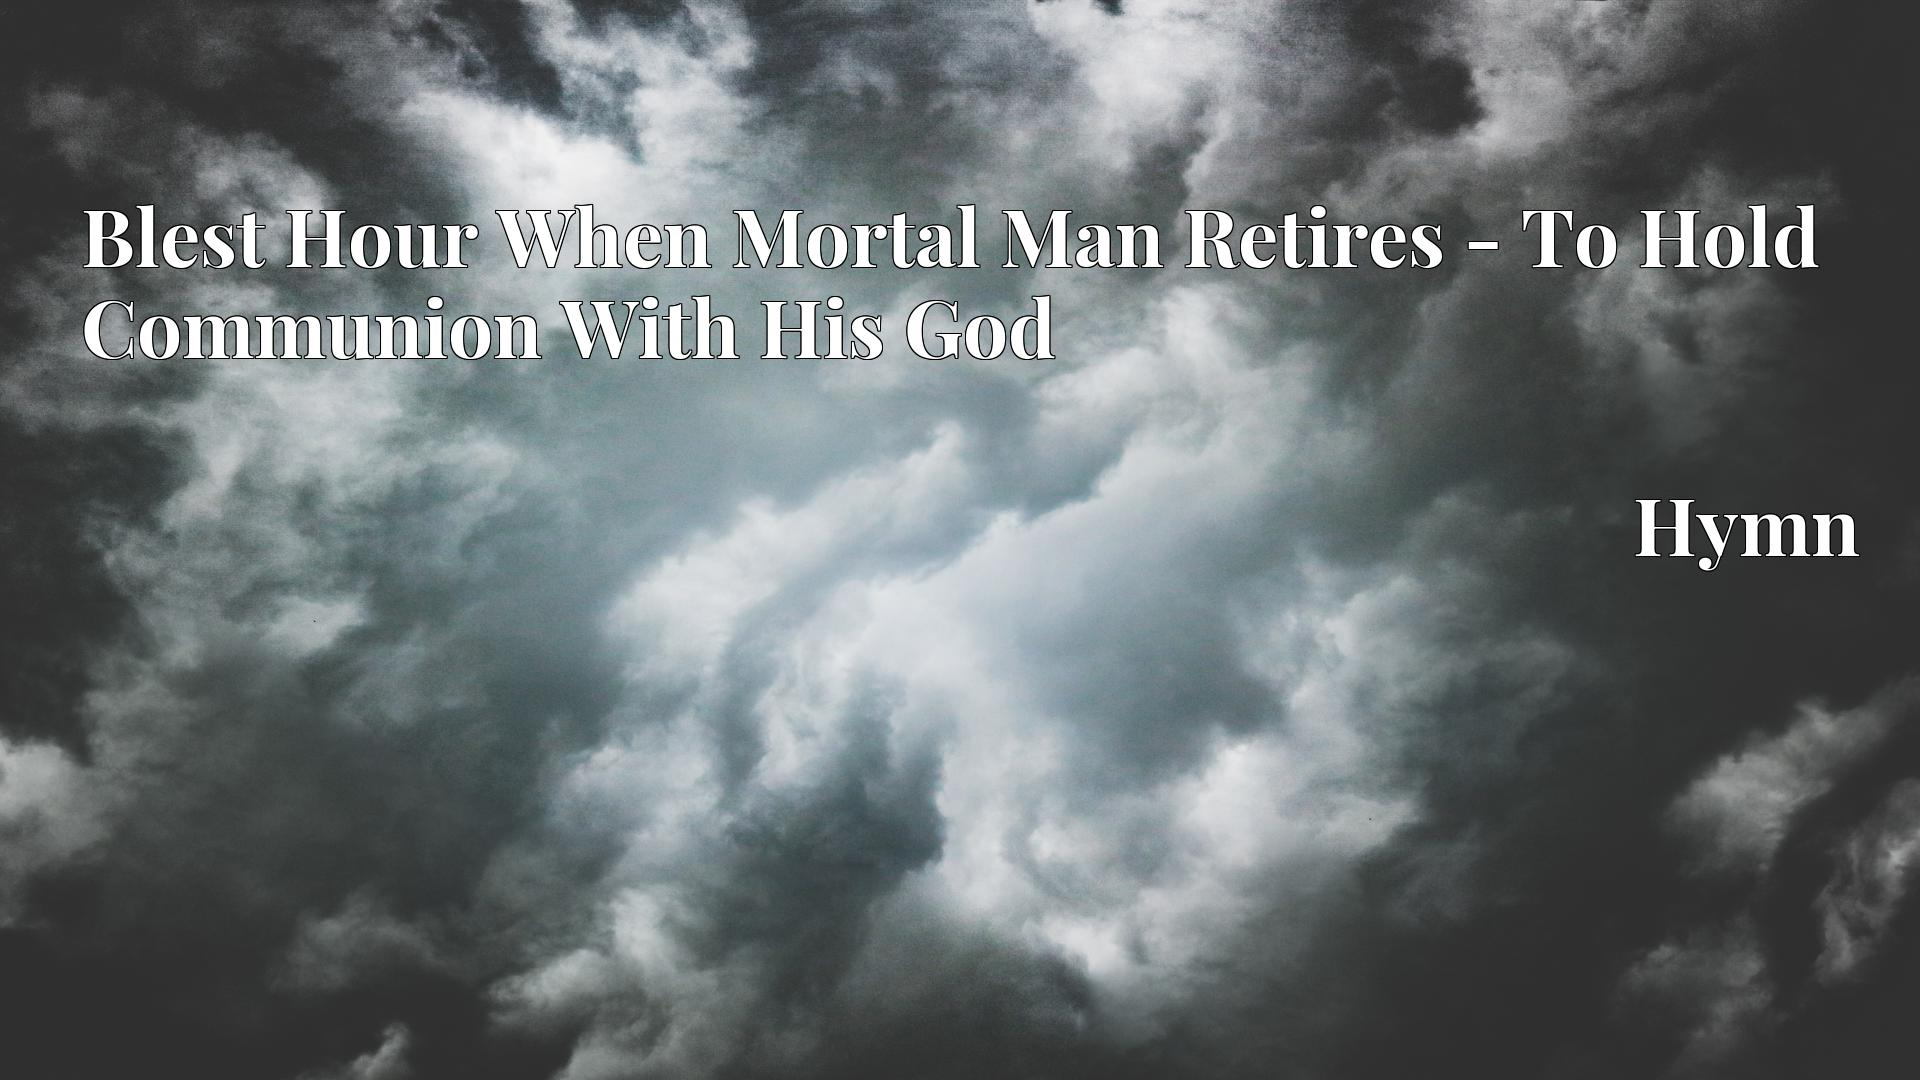 Blest Hour When Mortal Man Retires - To Hold Communion With His God Hymn